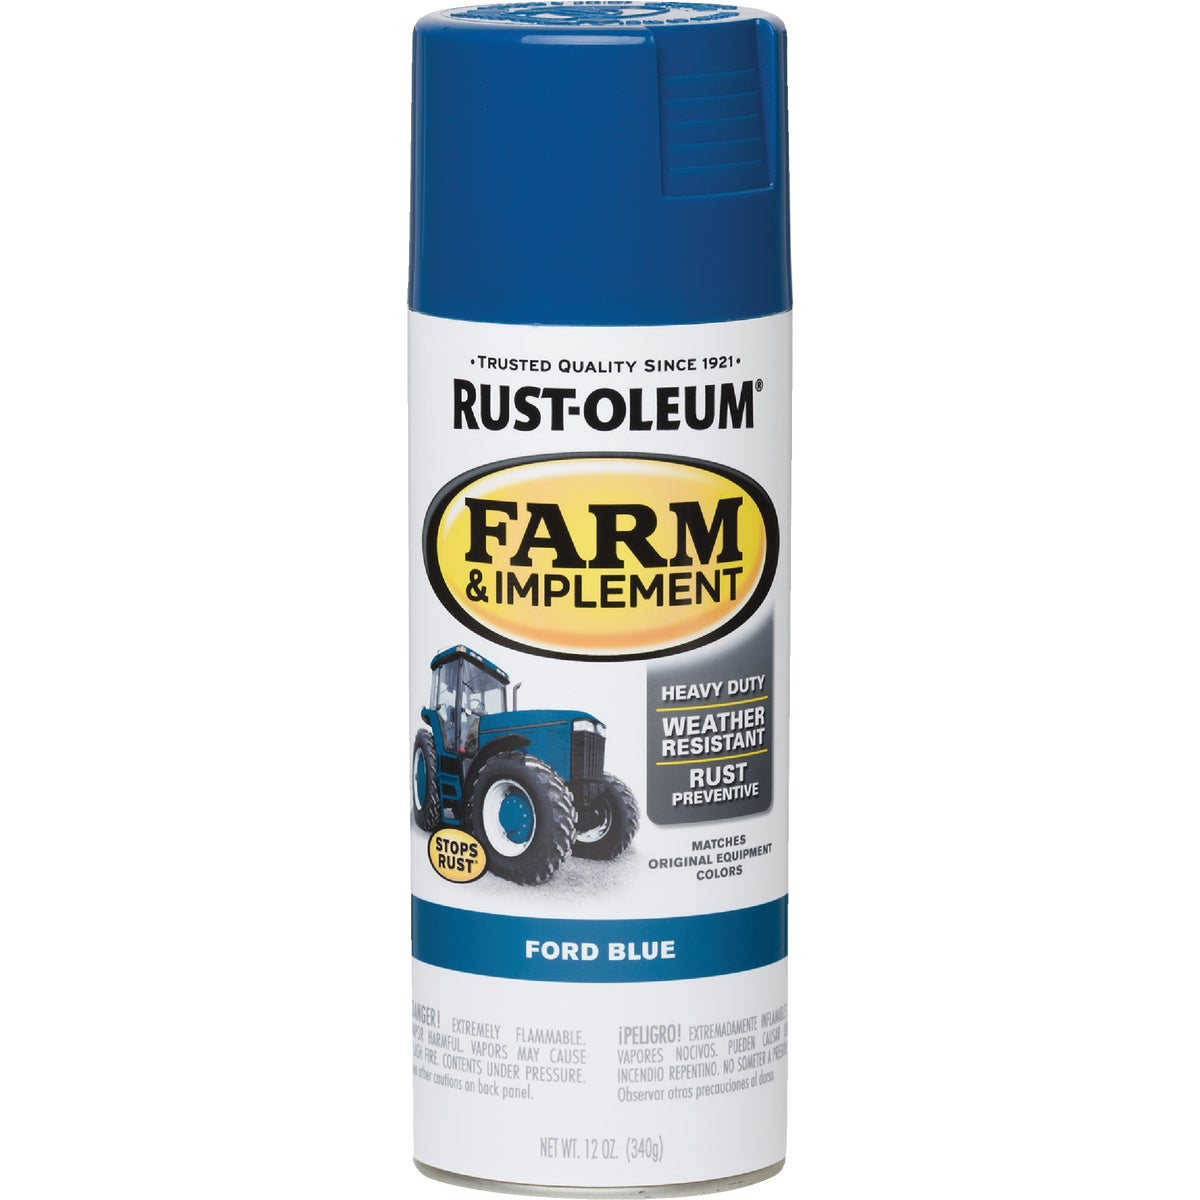 FORD BLUE SPRAY PAINT - 7424-830 by Rustoleum